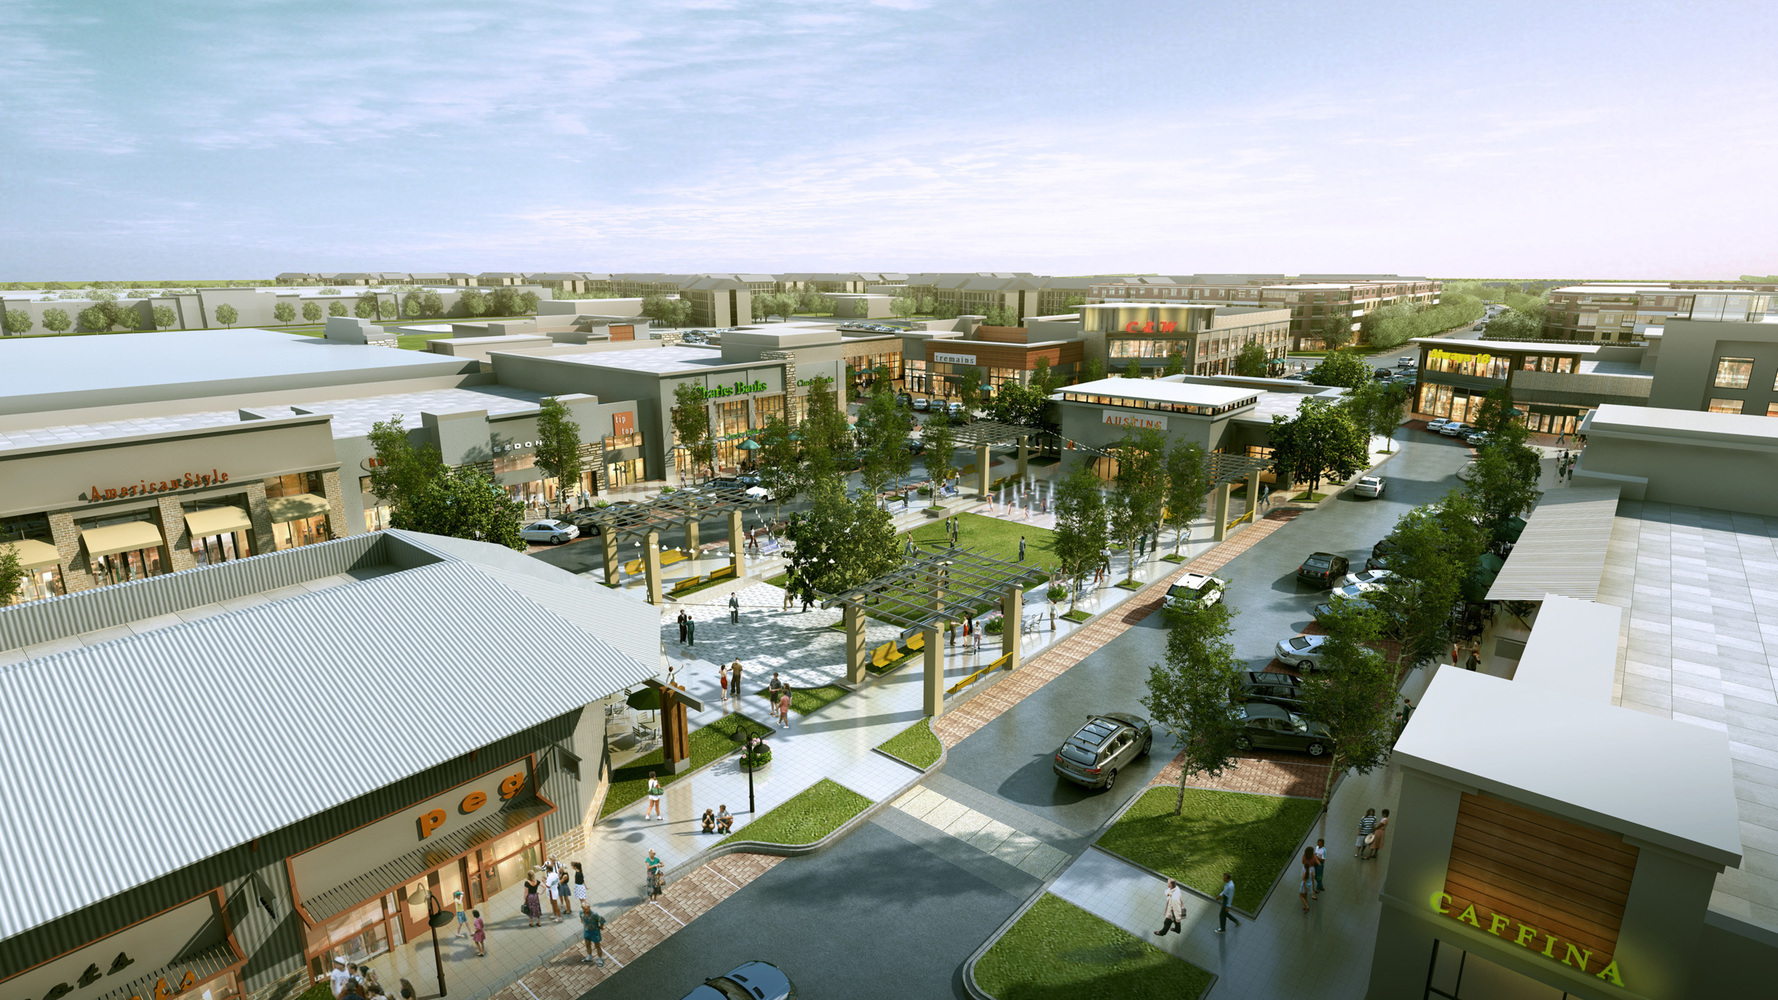 Alliance Town Center, developed by Hillwood and Trademark Property Company, offers shopping, dining and entertainment within north Fort Worth.